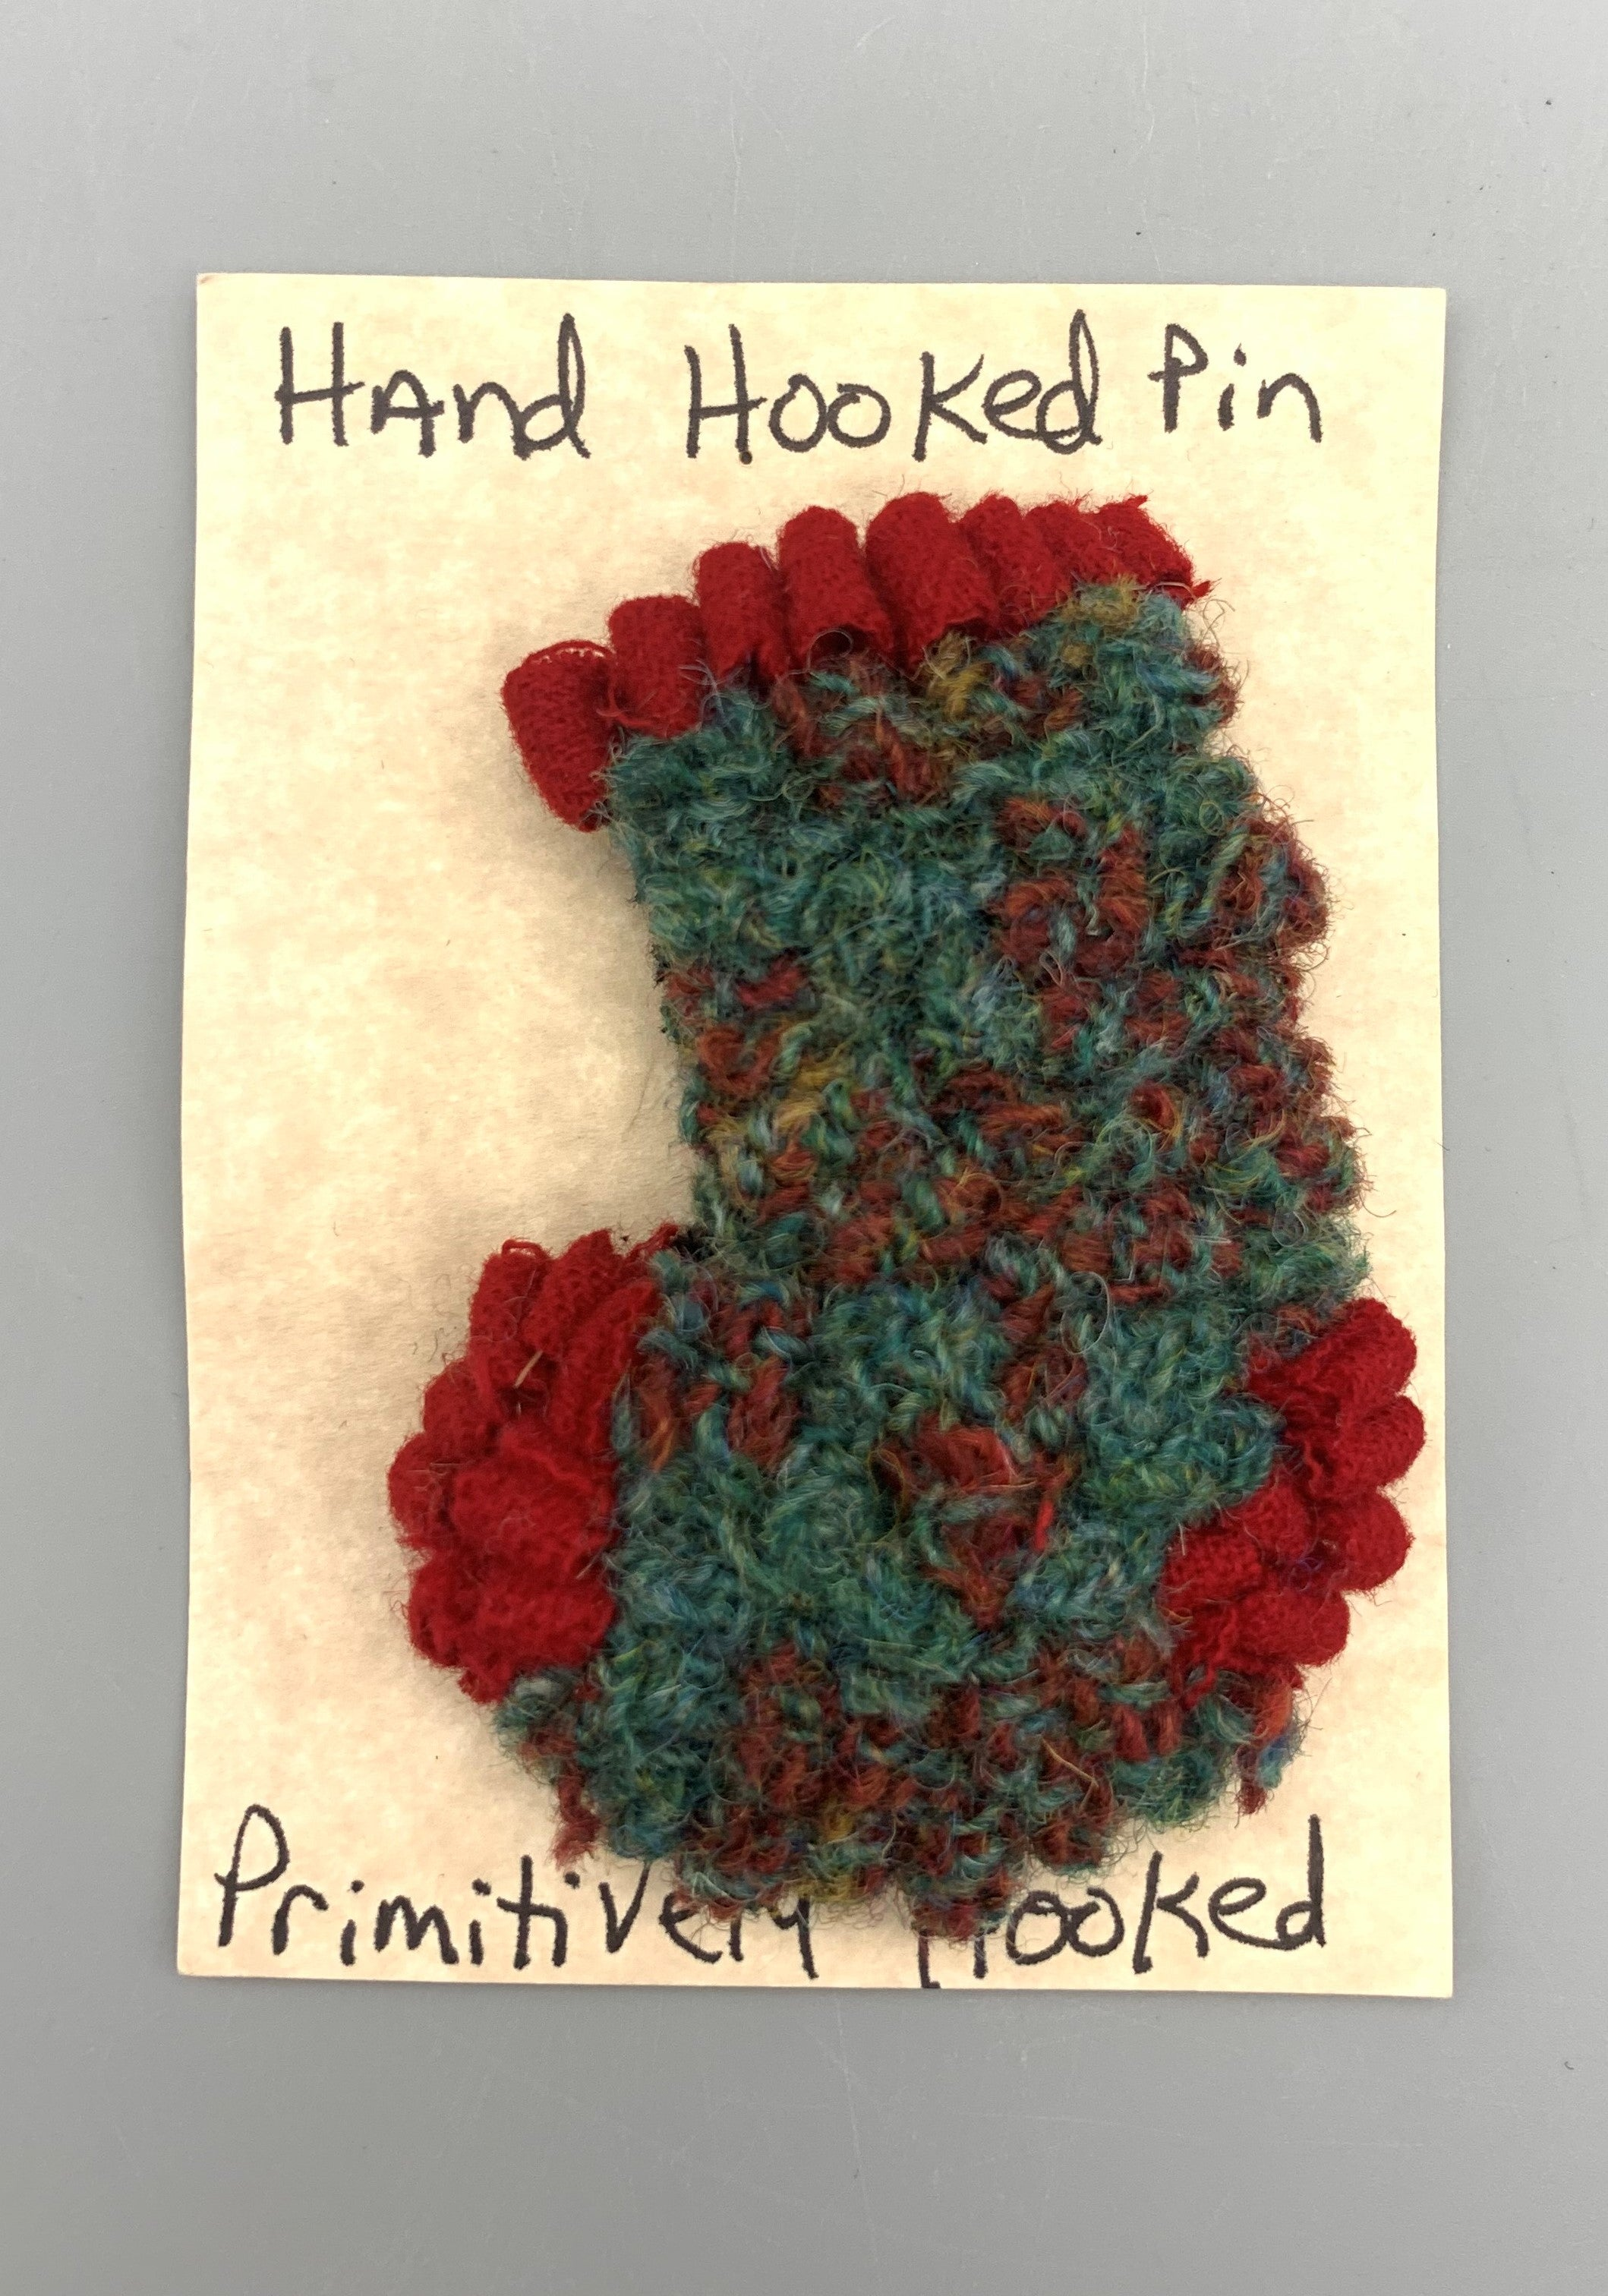 Rita Cutler - Stocking Hooked Pin